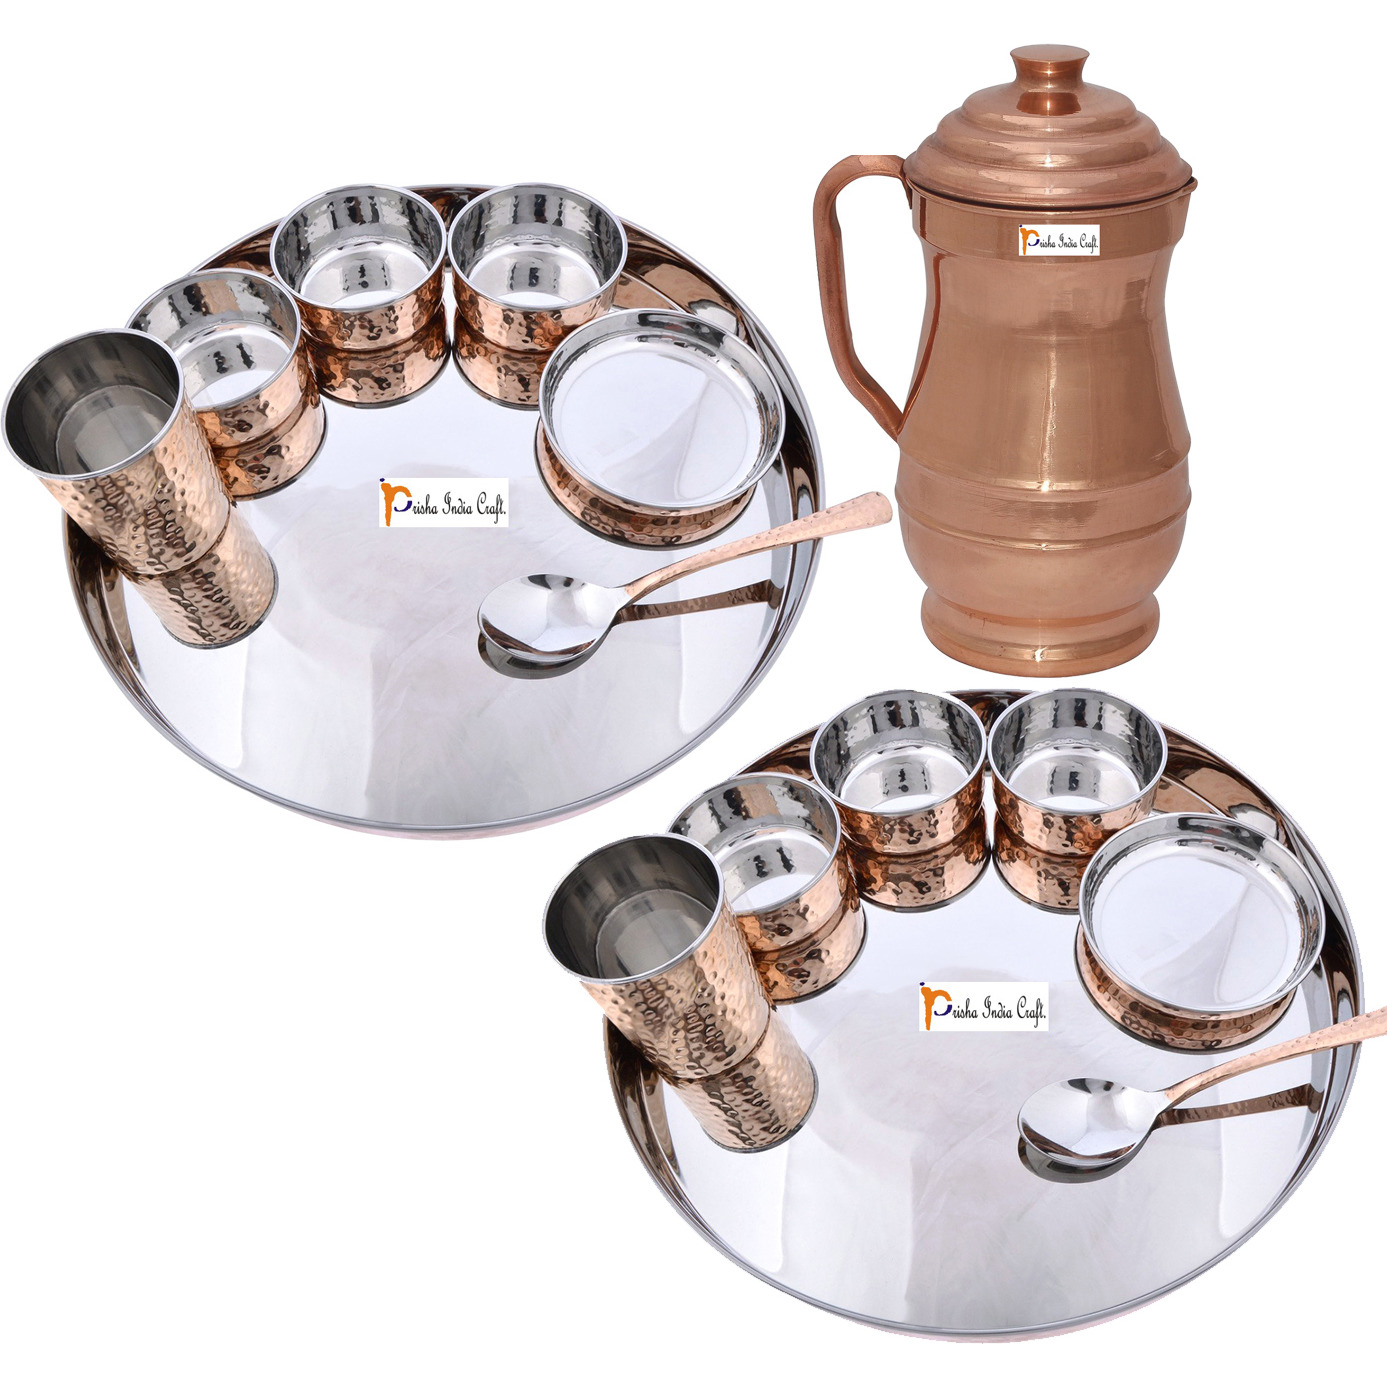 Prisha India Craft B. Set of 2 Dinnerware Traditional Stainless Steel Copper Dinner Set of Thali Plate, Bowls, Glass and Spoon, Dia 13  With 1 Pure Copper Maharaja Pitcher Jug - Christmas Gift